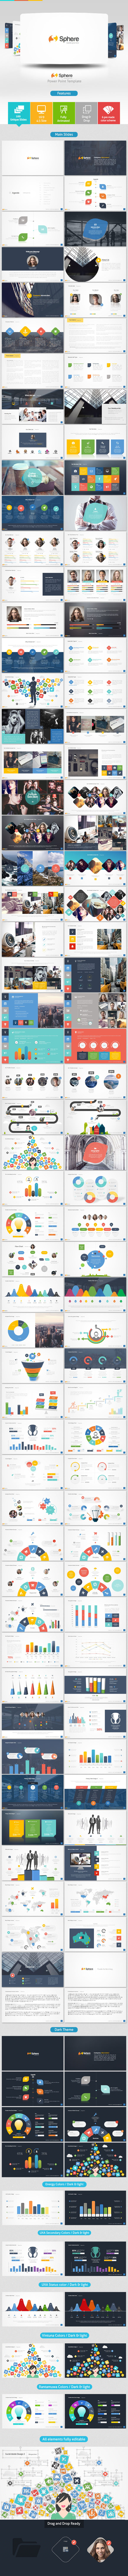 GraphicRiver Sphere Multipurpose Power Point Template 10531063